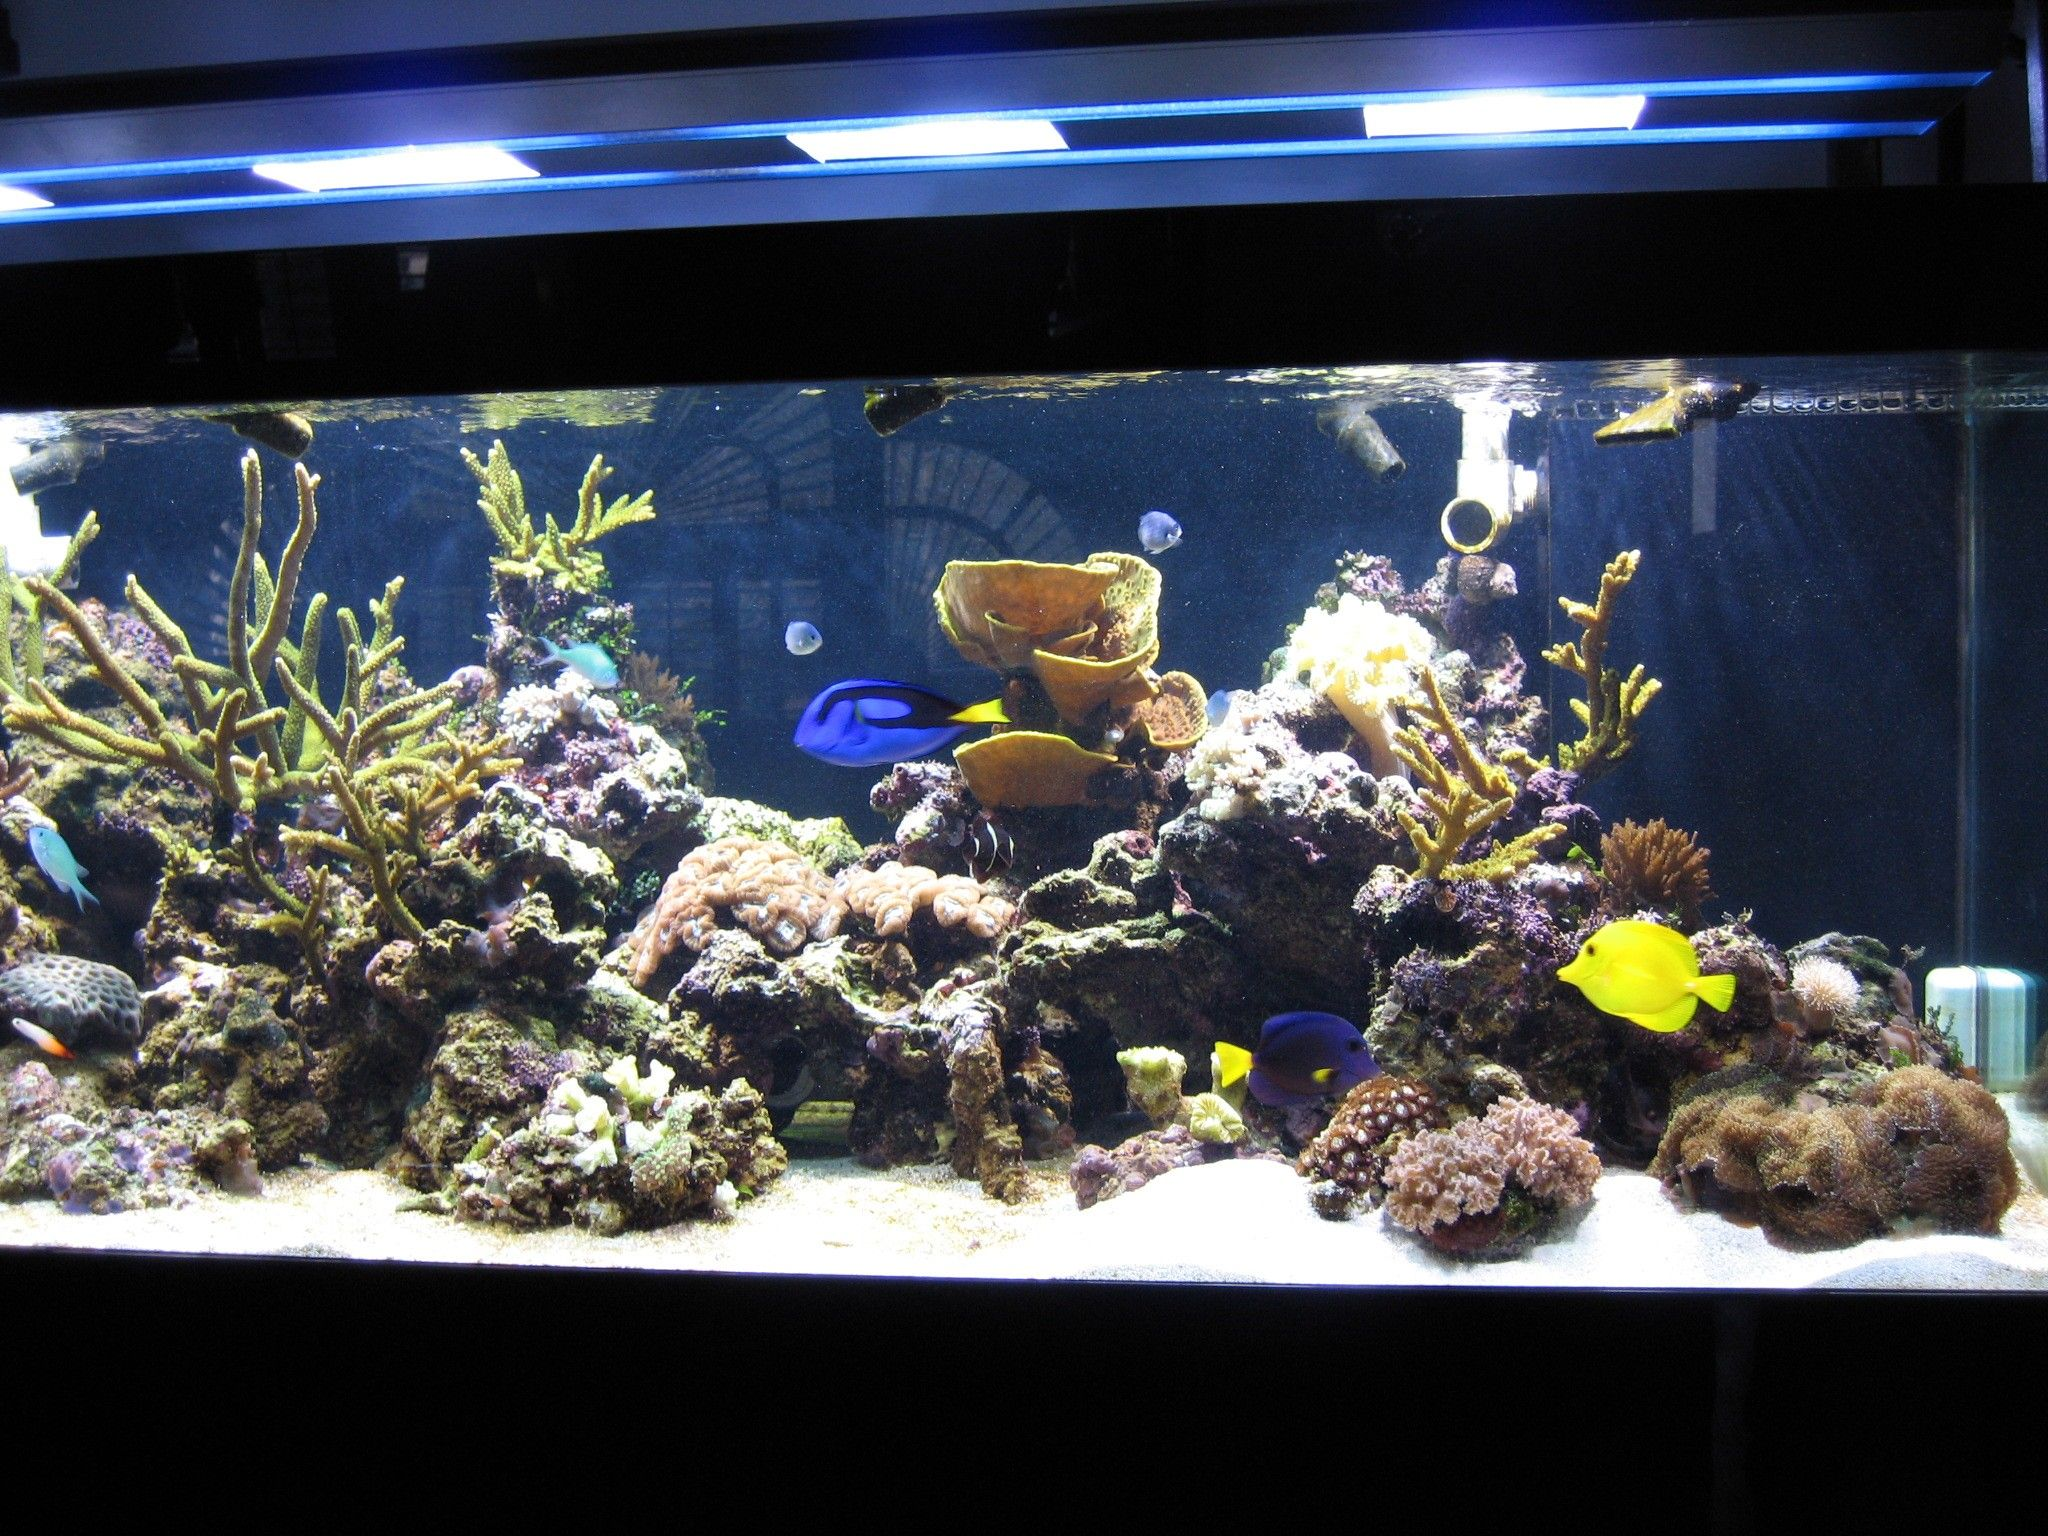 300 gallon reef aquarium setup reef aquarium